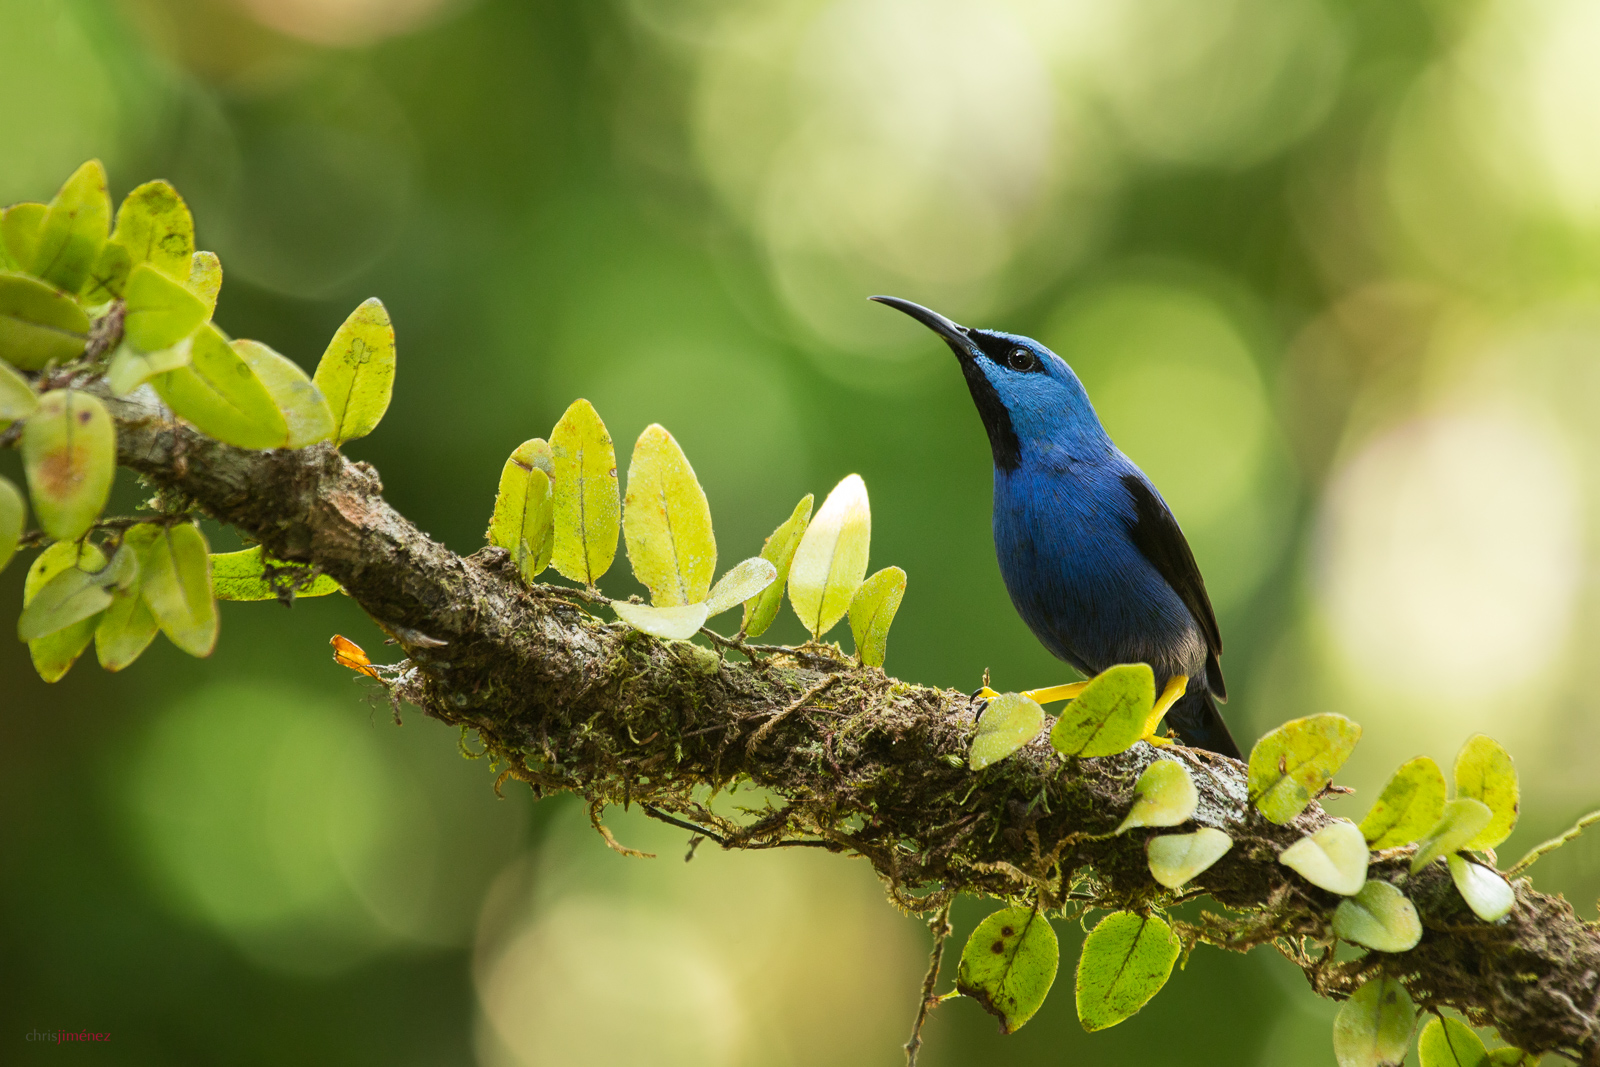 Shining Honeycreeper (Cyanerpes lucidus) perched on a branch